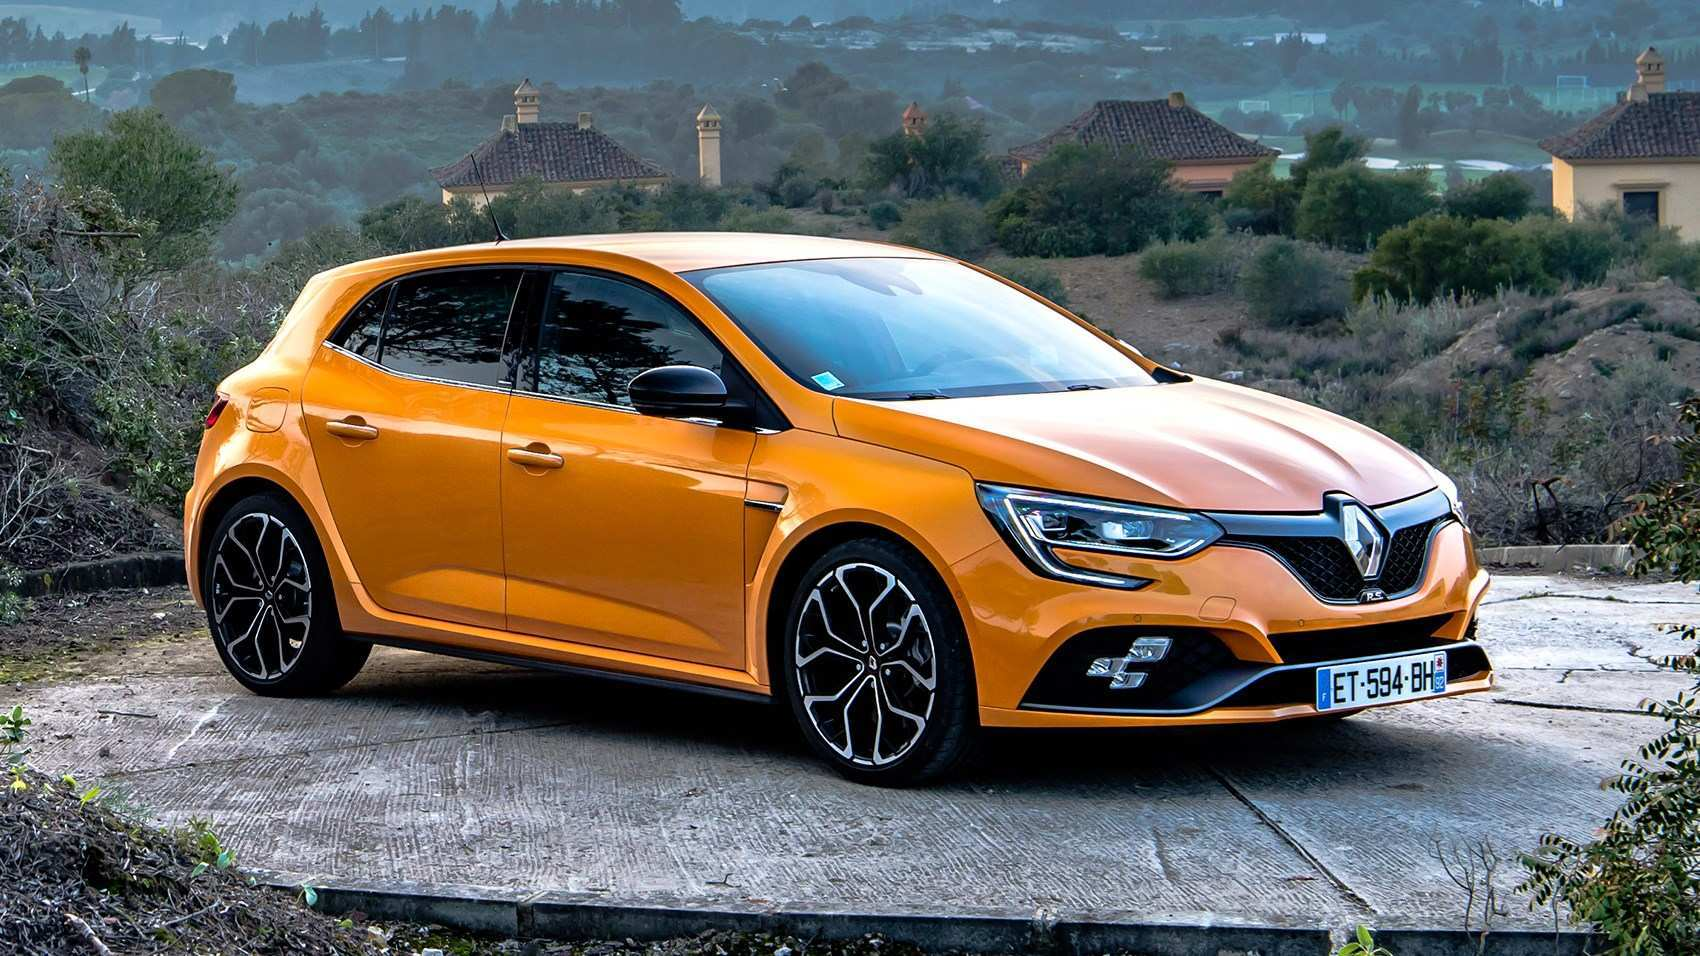 85 All New 2019 Renault Megane Rs New Concept